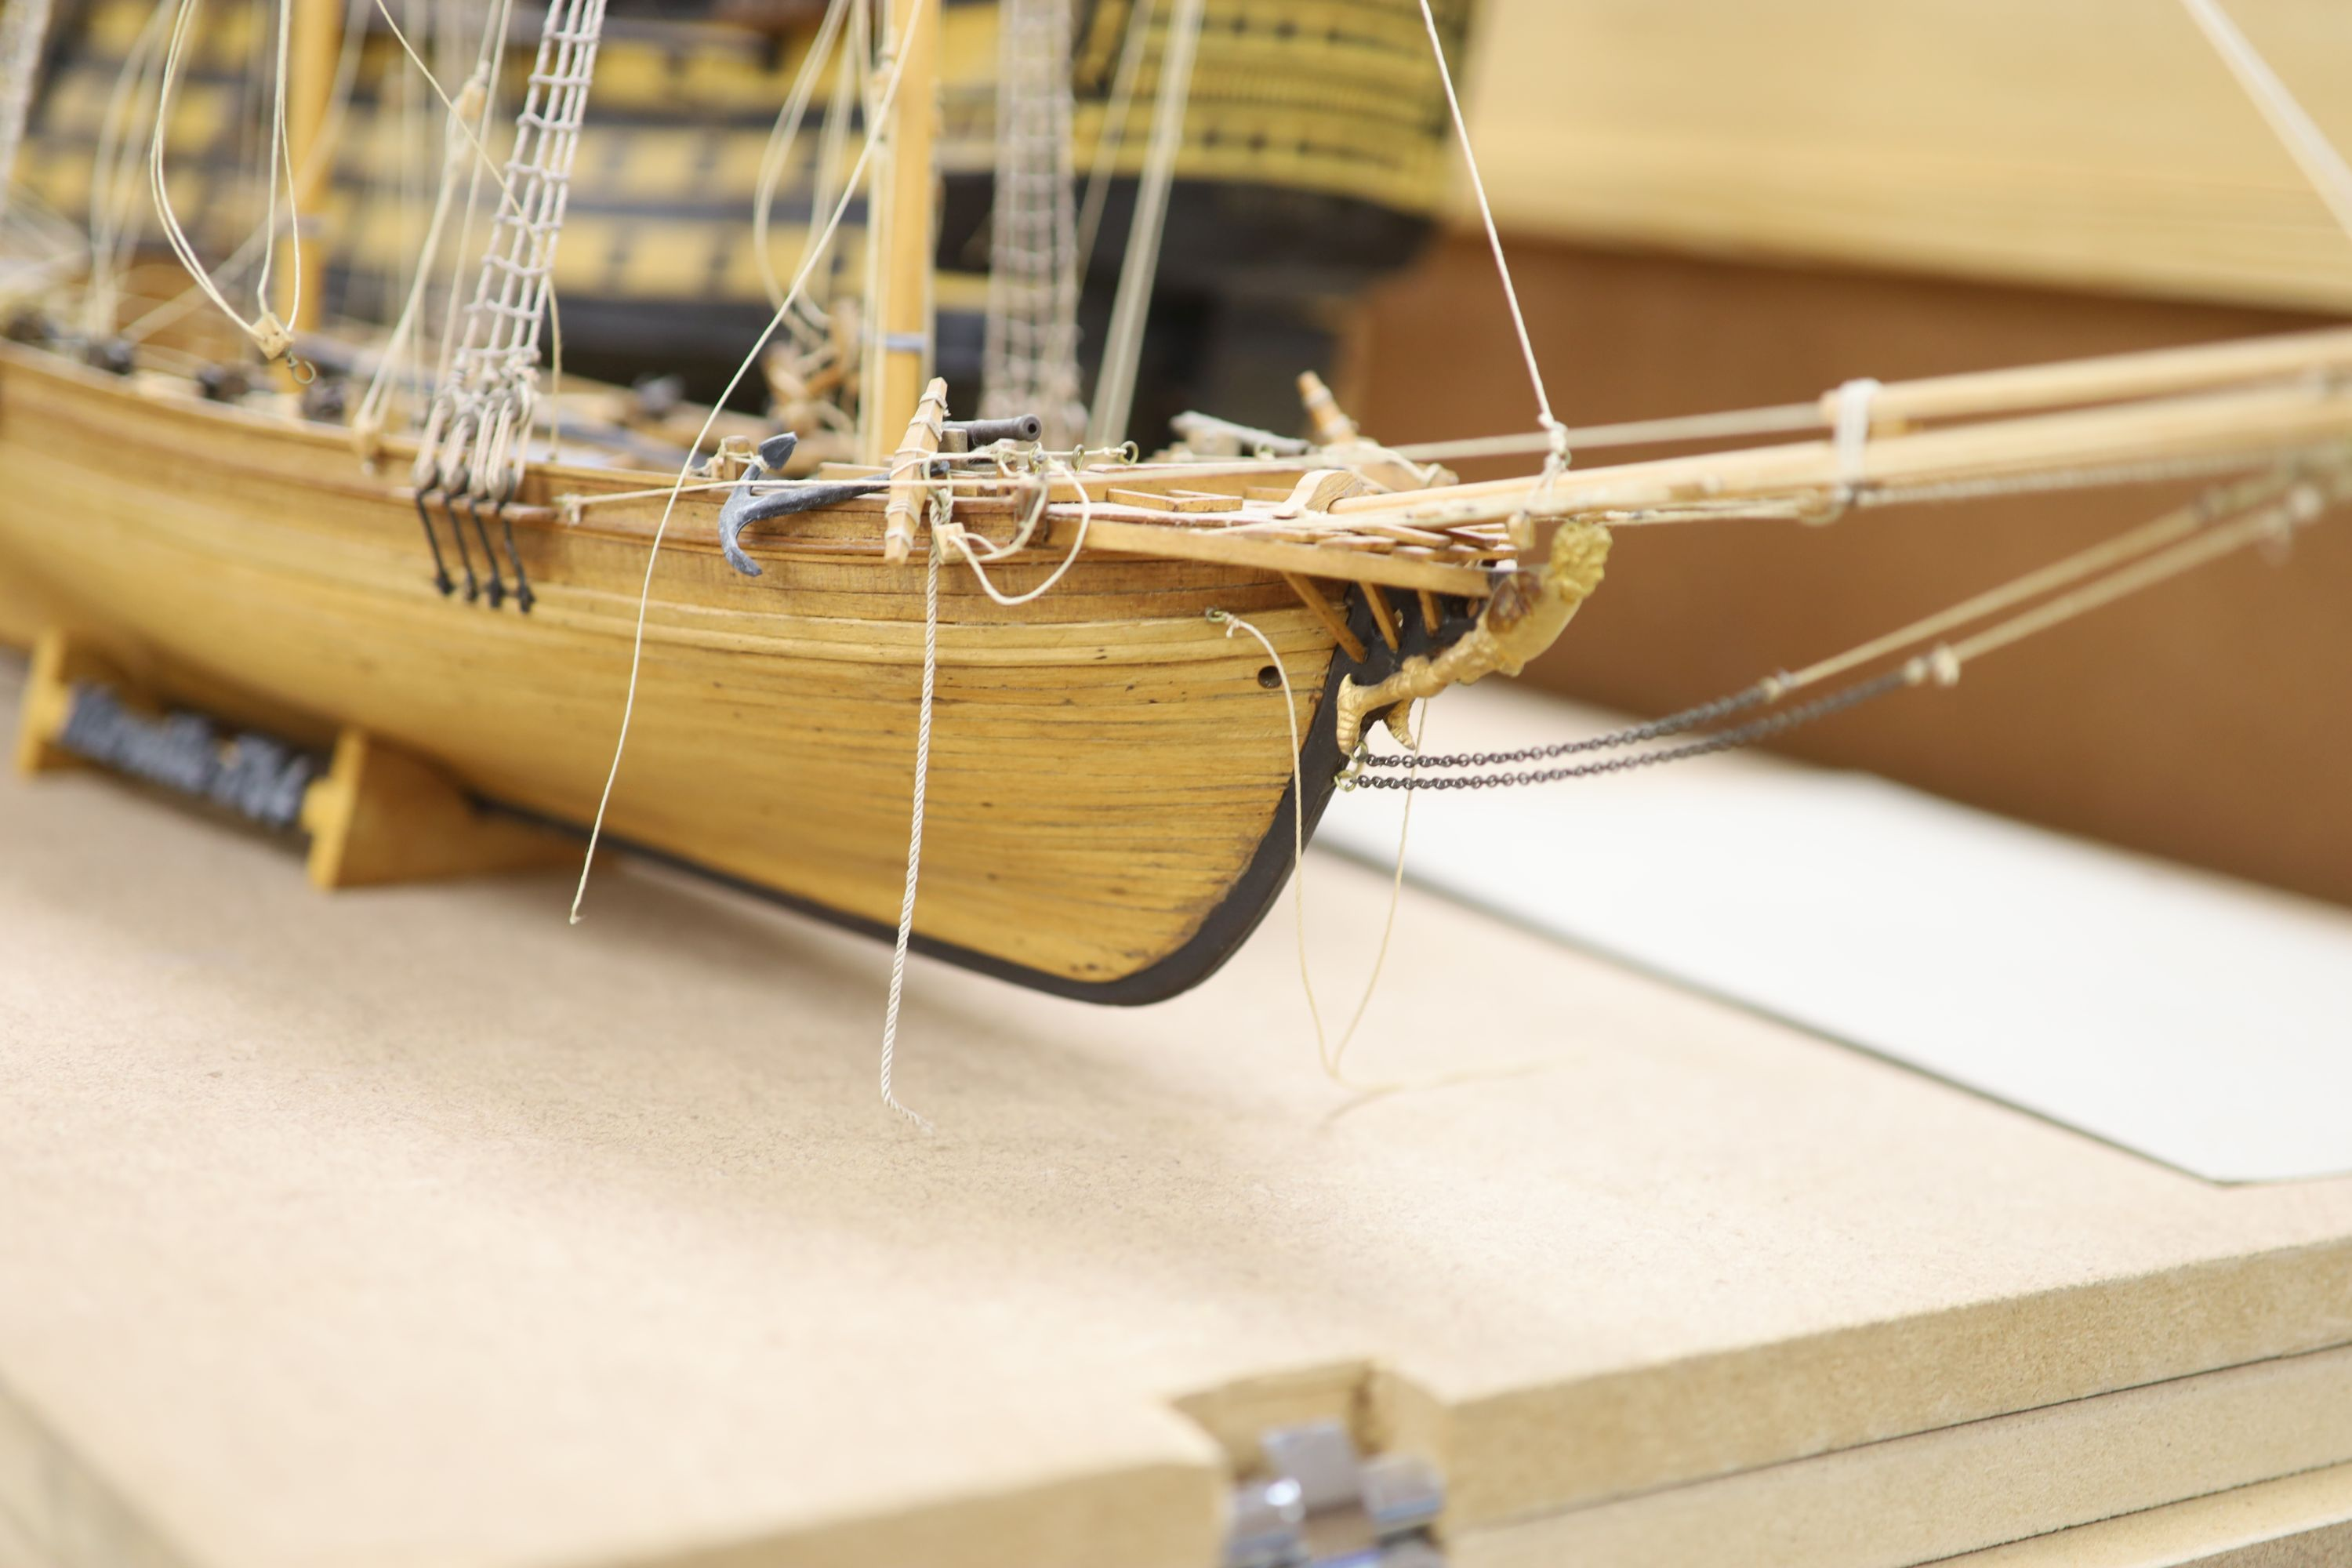 A model of 'The Victory', width 90cm, and a model of 'The Marseille' - Image 4 of 8